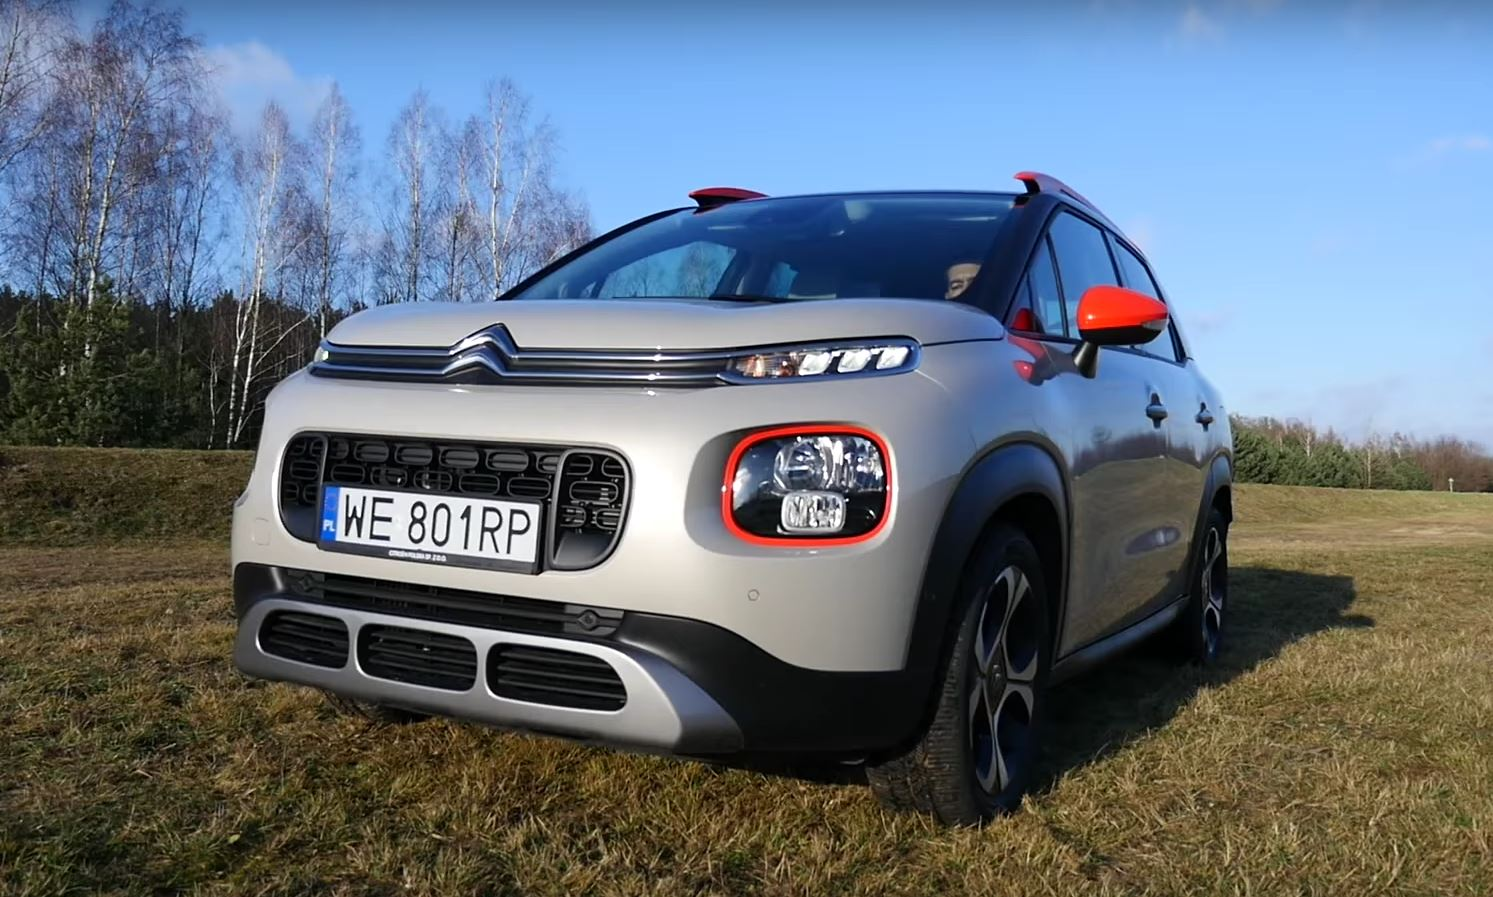 citroen c3 aircross is full of quirks says review autoevolution. Black Bedroom Furniture Sets. Home Design Ideas